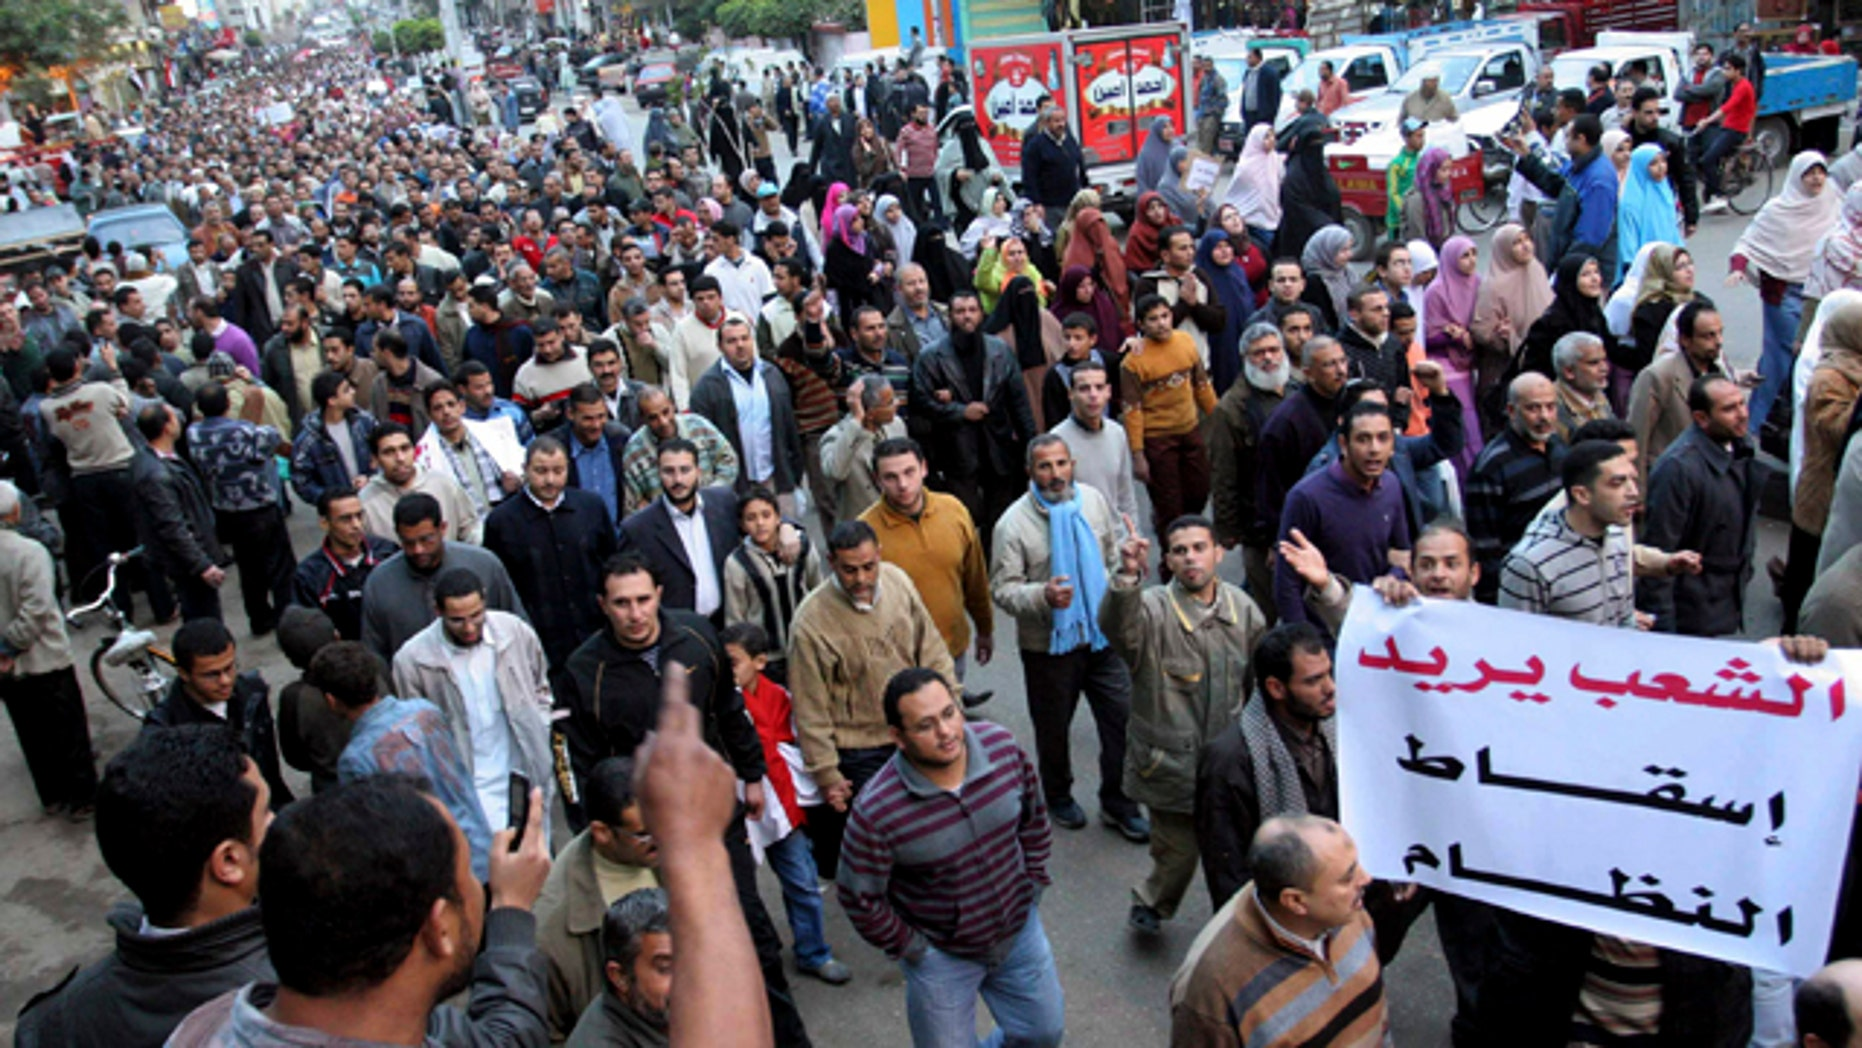 Feb. 6, 2011: Egyptian anti-Mubarak protesters march in al Mansoura city, Egypt.